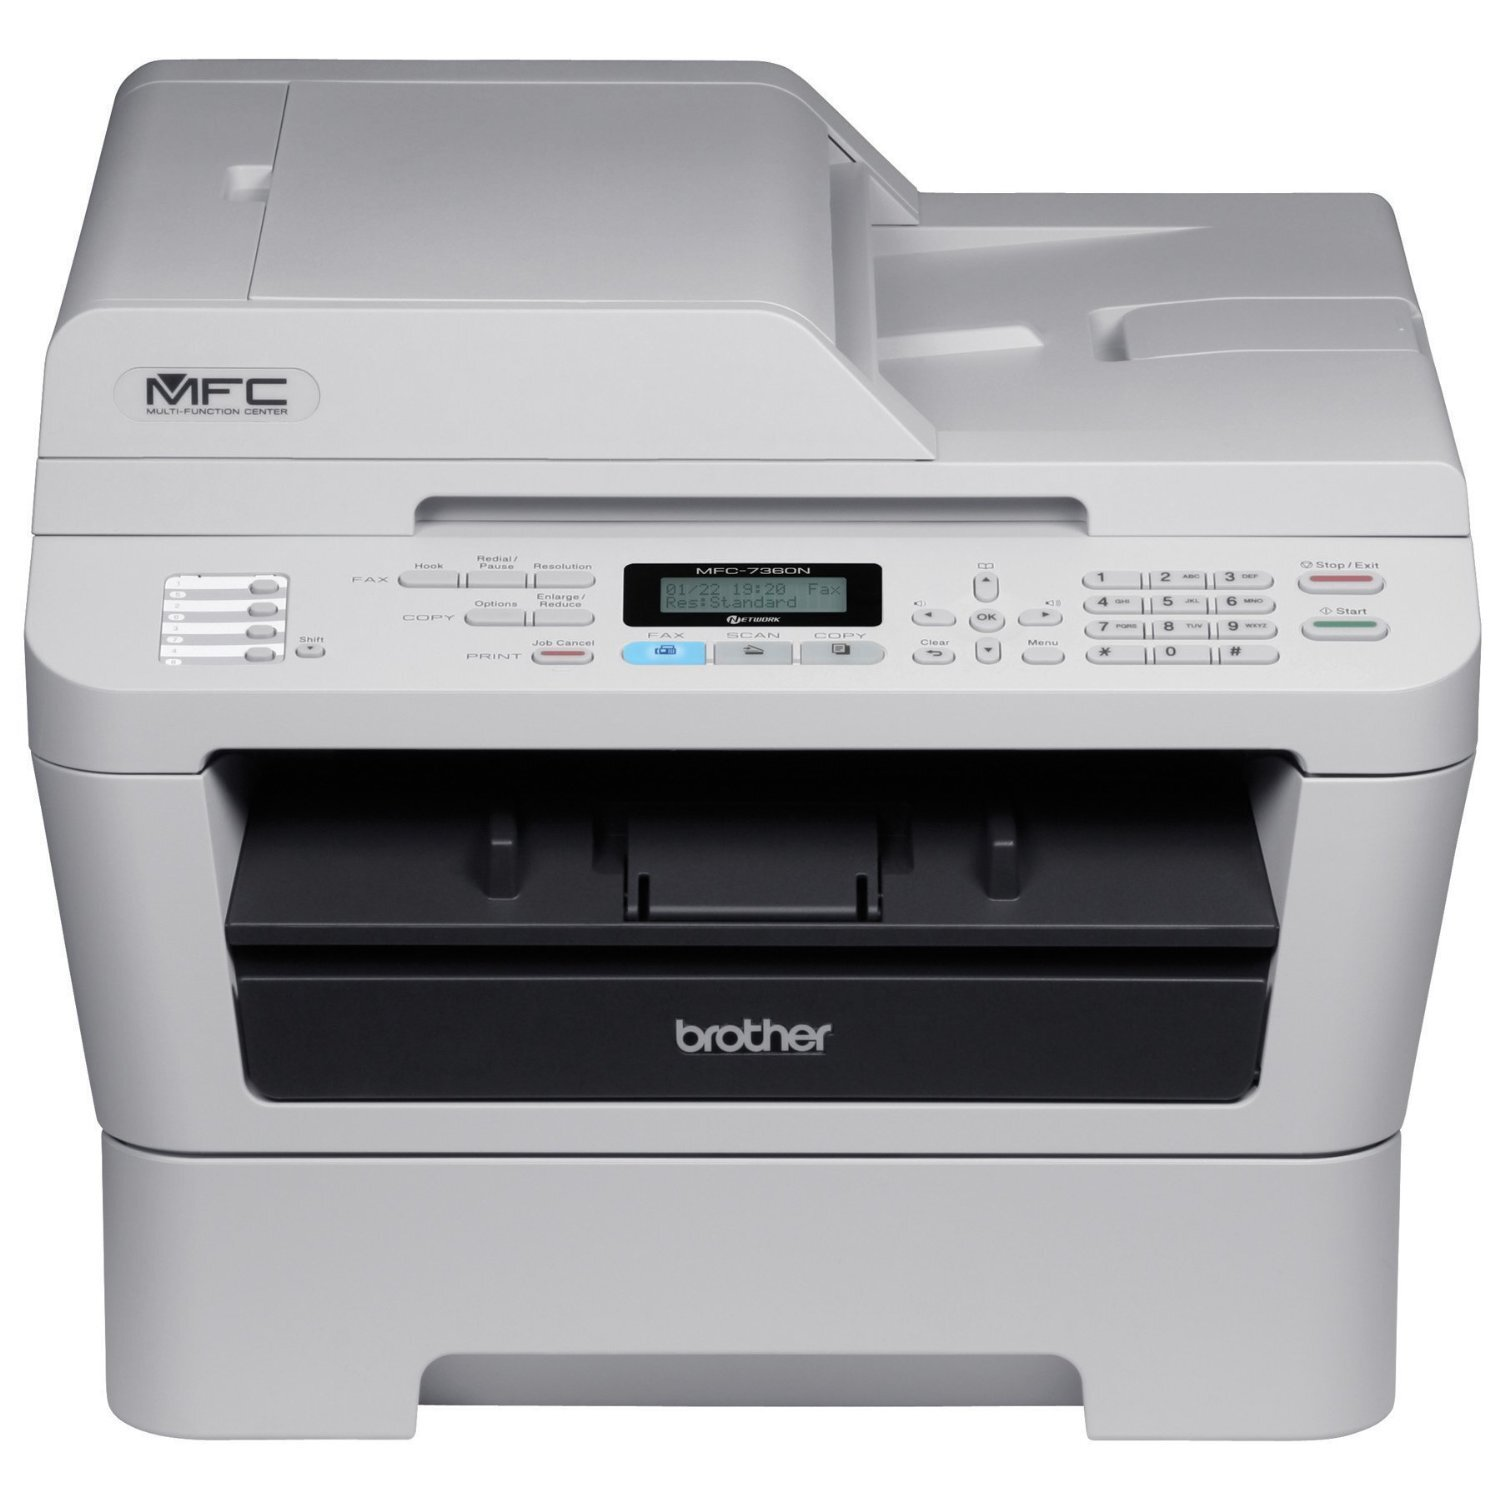 Máy in laser đen trắng đa năng (All-in-one) Brother MFC-7360 - A4